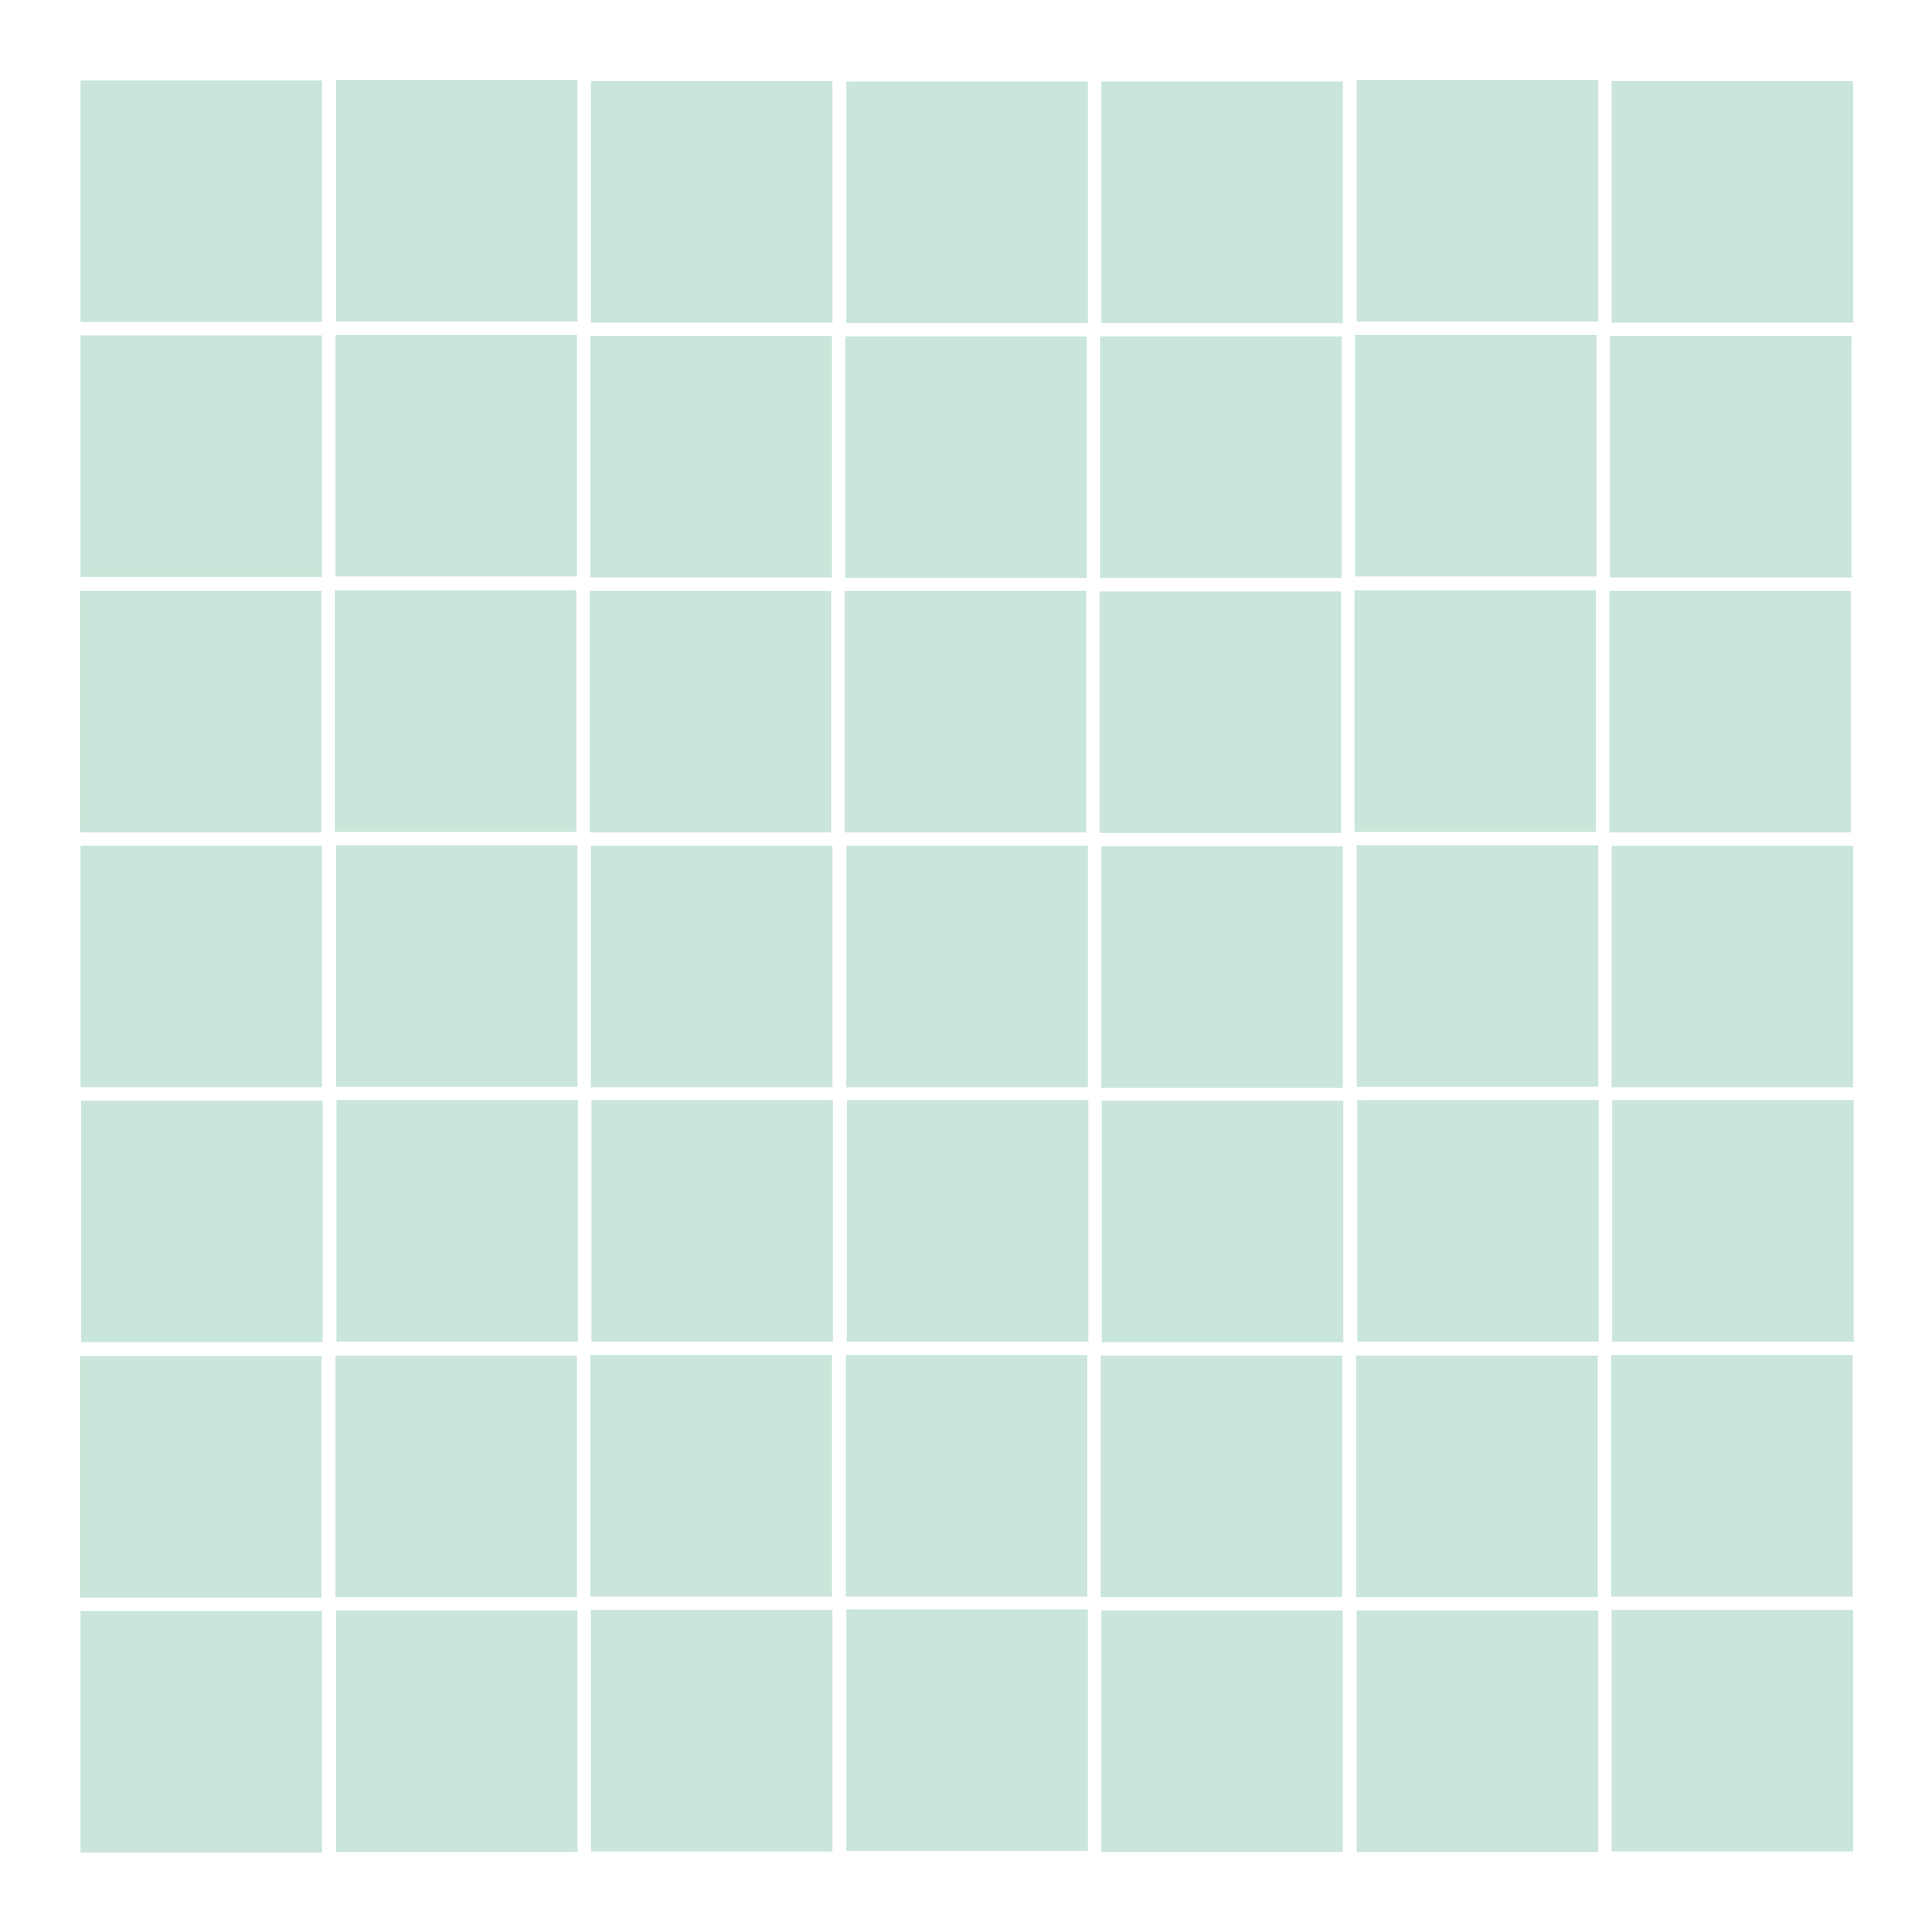 grid layout small squares || noexcusescrapbooking.com